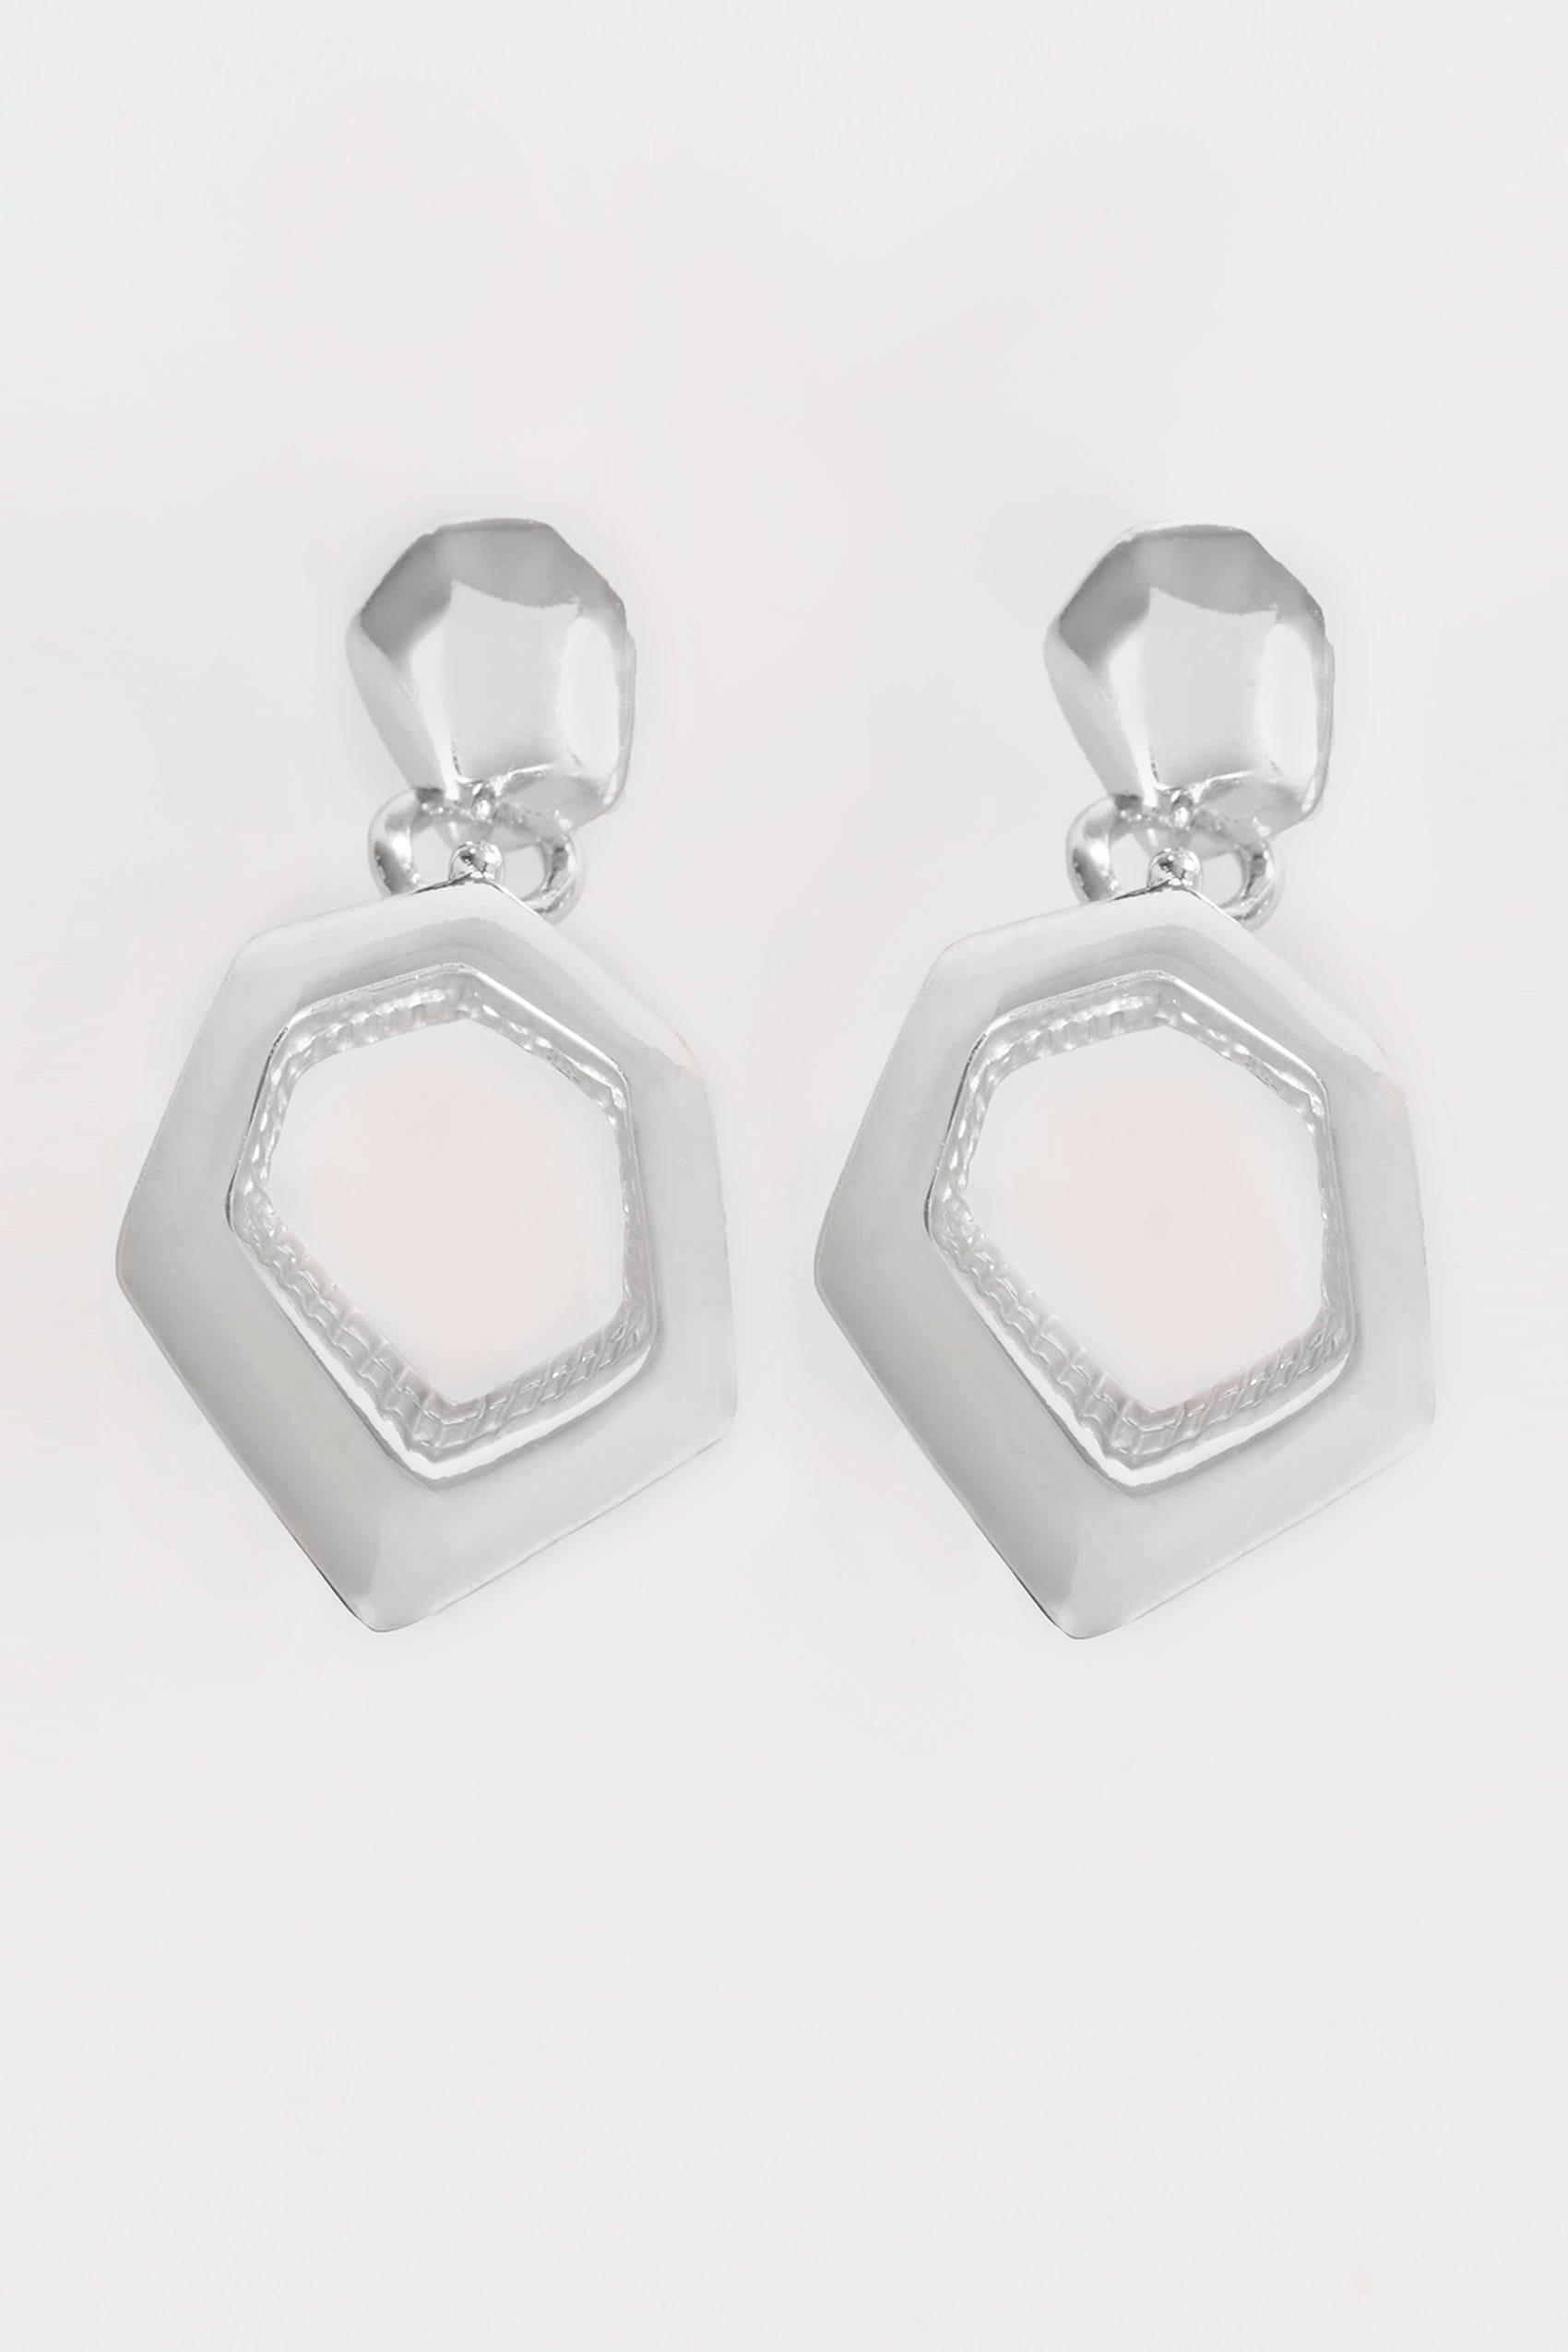 jewellery made hoops mini earrings hexagon silver